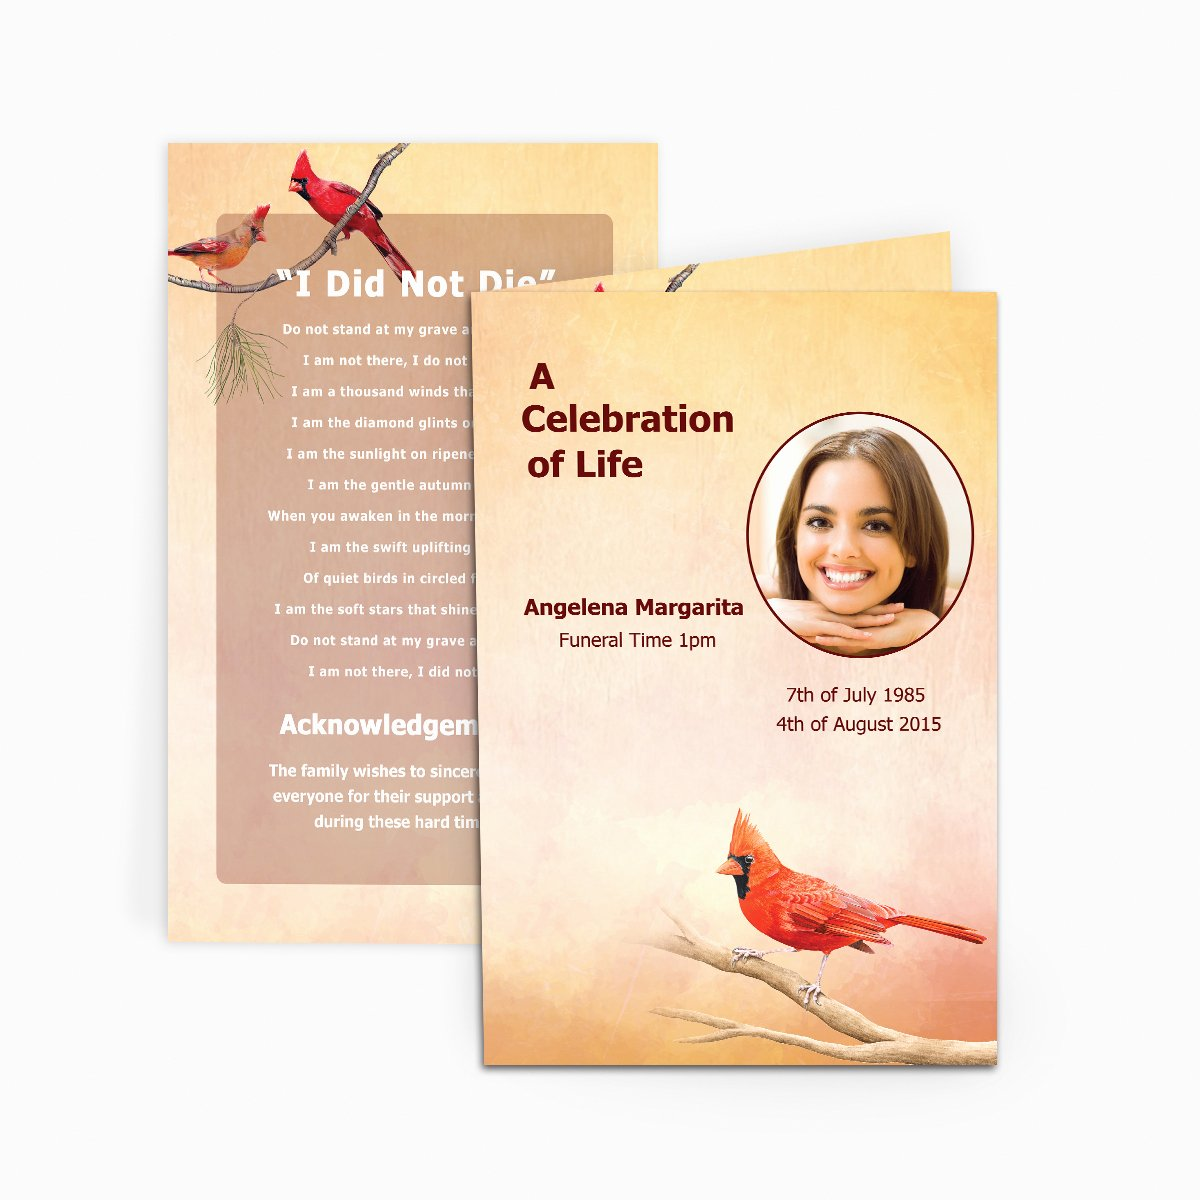 Funeral Memorial Card Template Fresh Cardinal Funeral Card Funeral Pamphlets